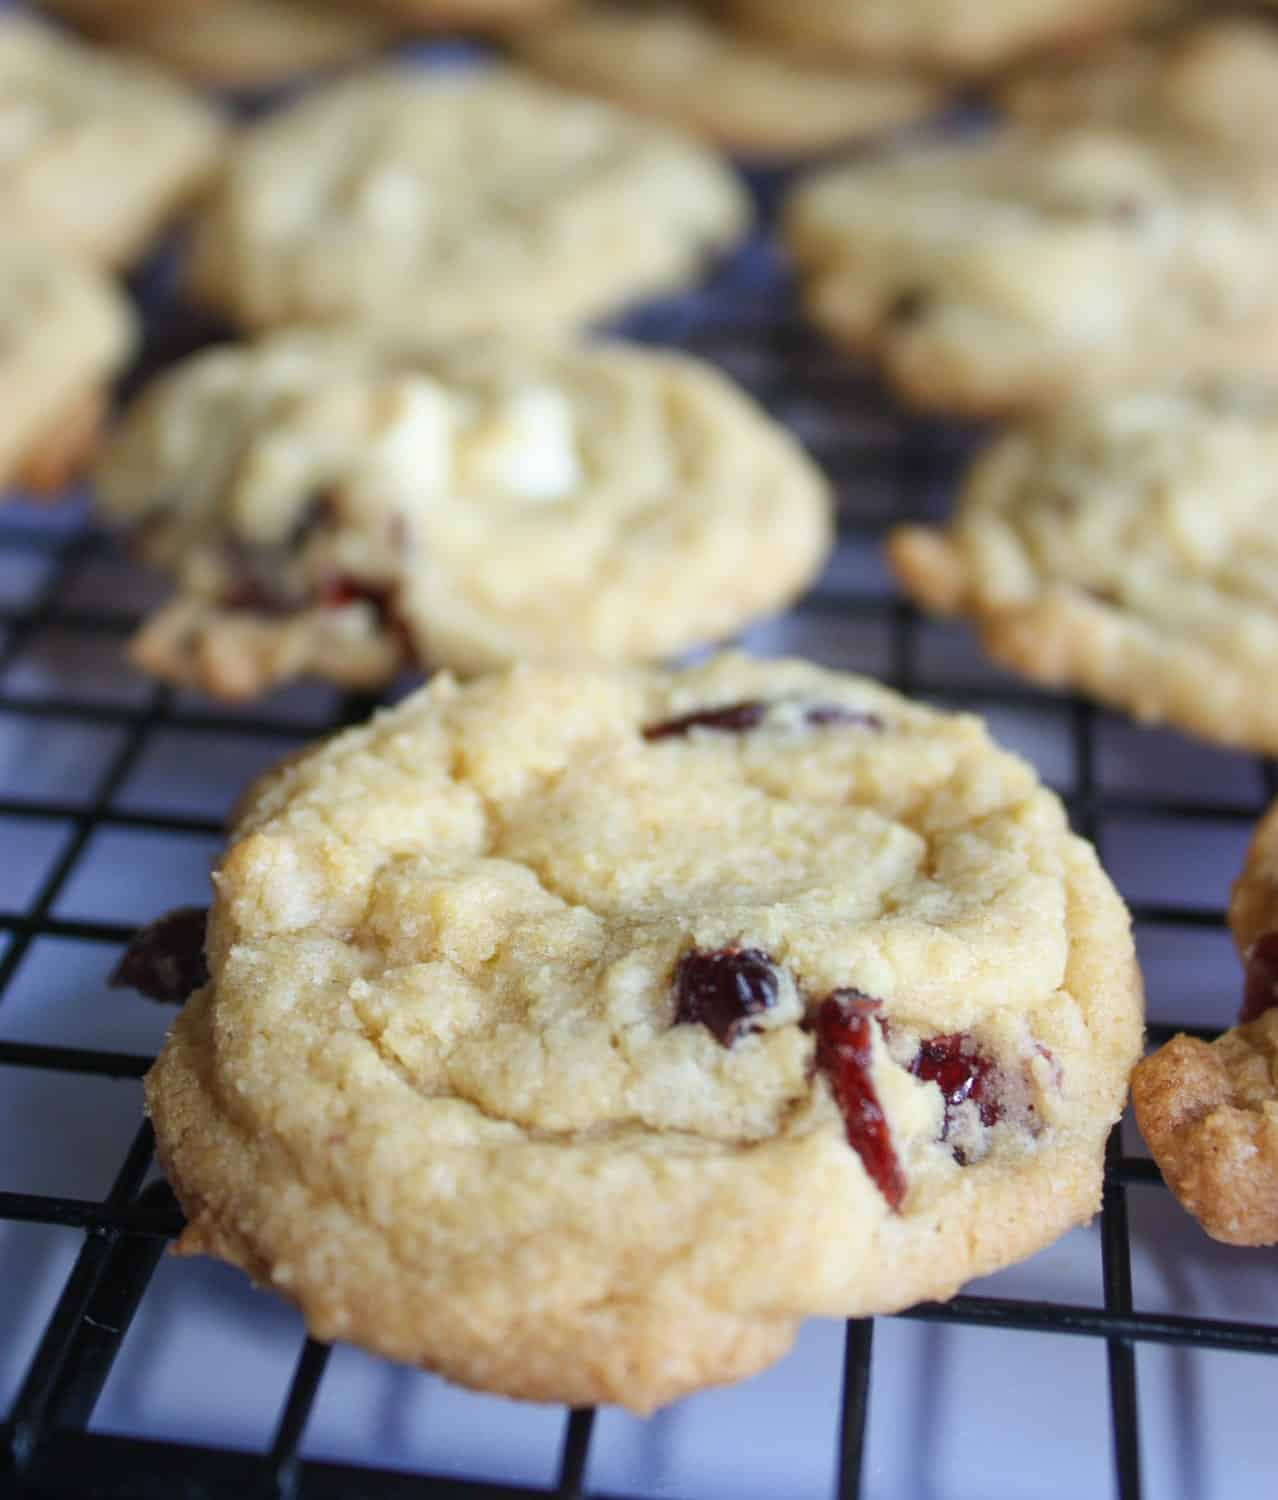 White Chocolate Cranberry Cookies are a tasty, chewy alternative to the classic chocolate chip cookie. The dried cranberries add a nice pop of colour for the holiday season.